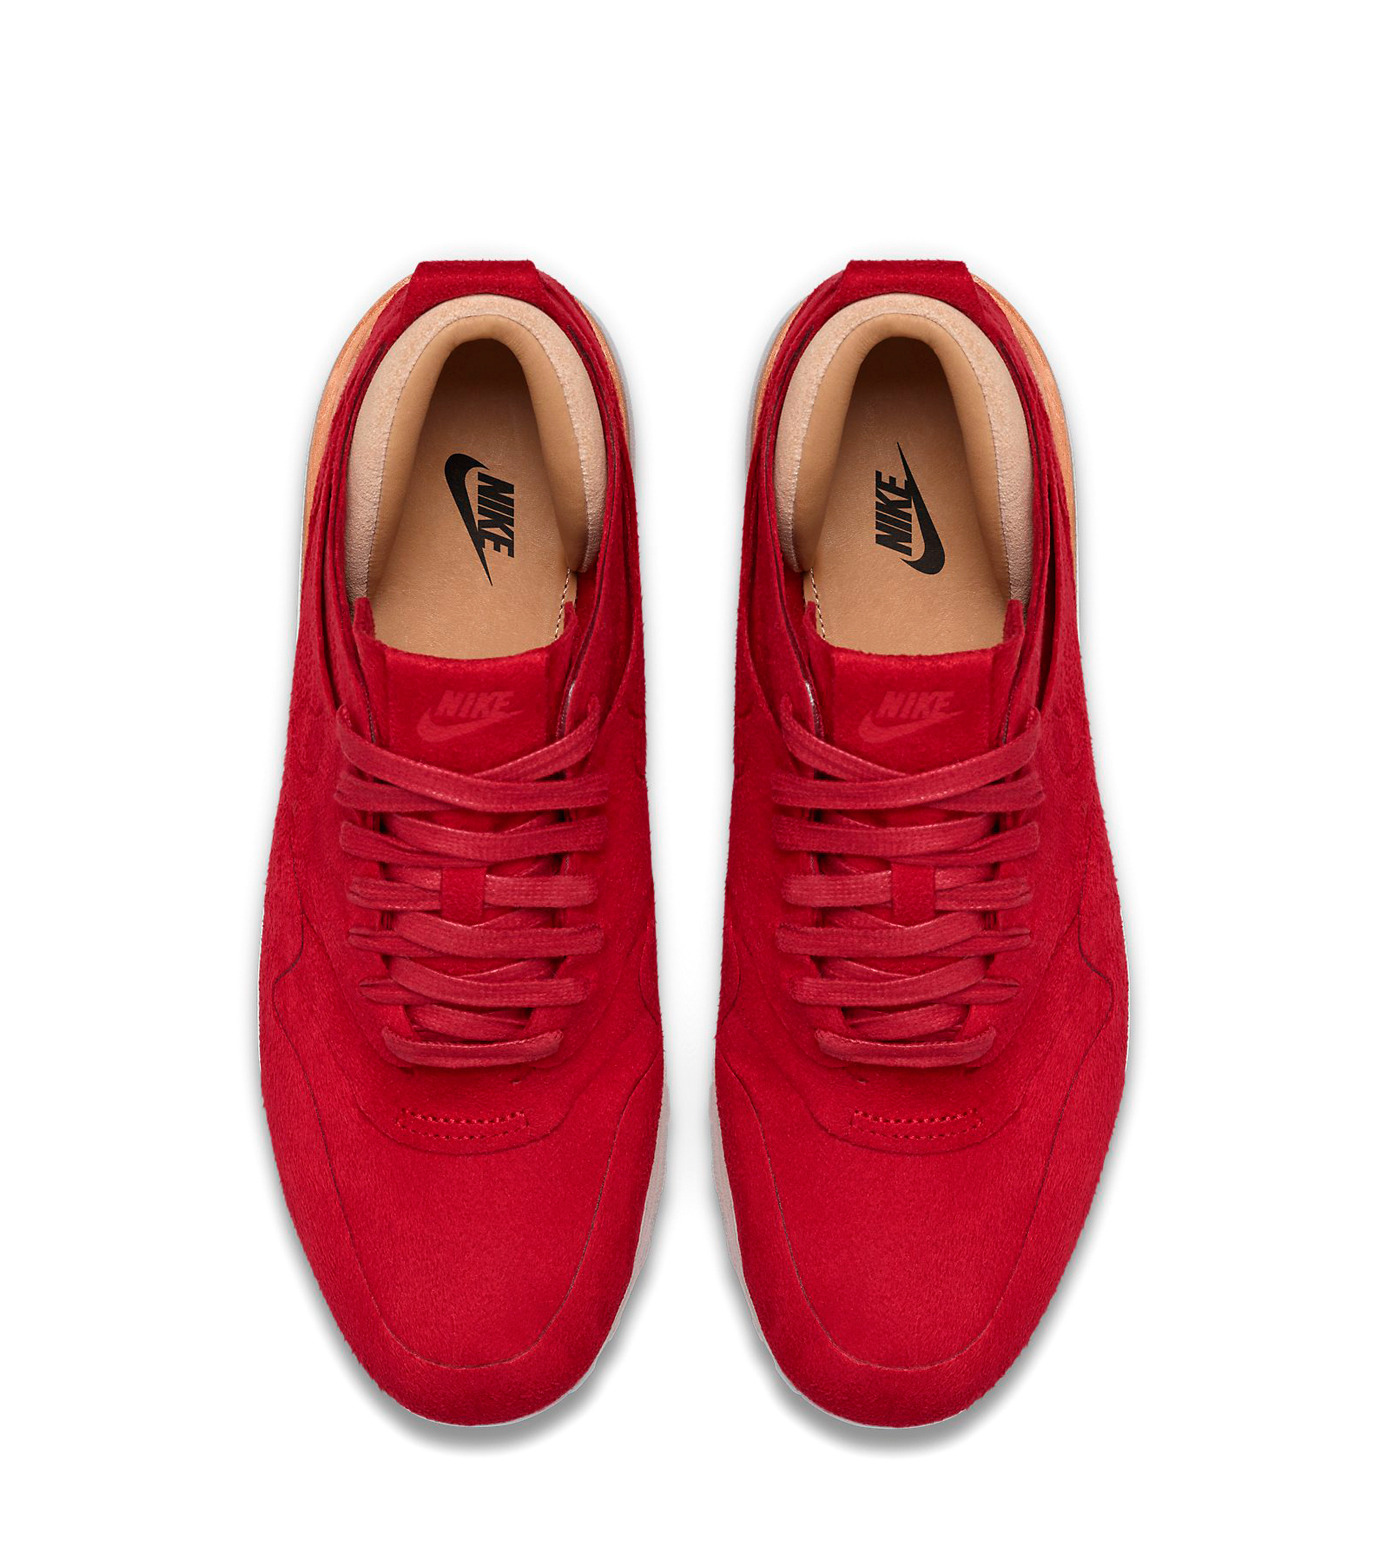 NIKE(ナイキ)のWMNS Air Max 1-RED(シューズ/shoes)-847672-661-62 拡大詳細画像4